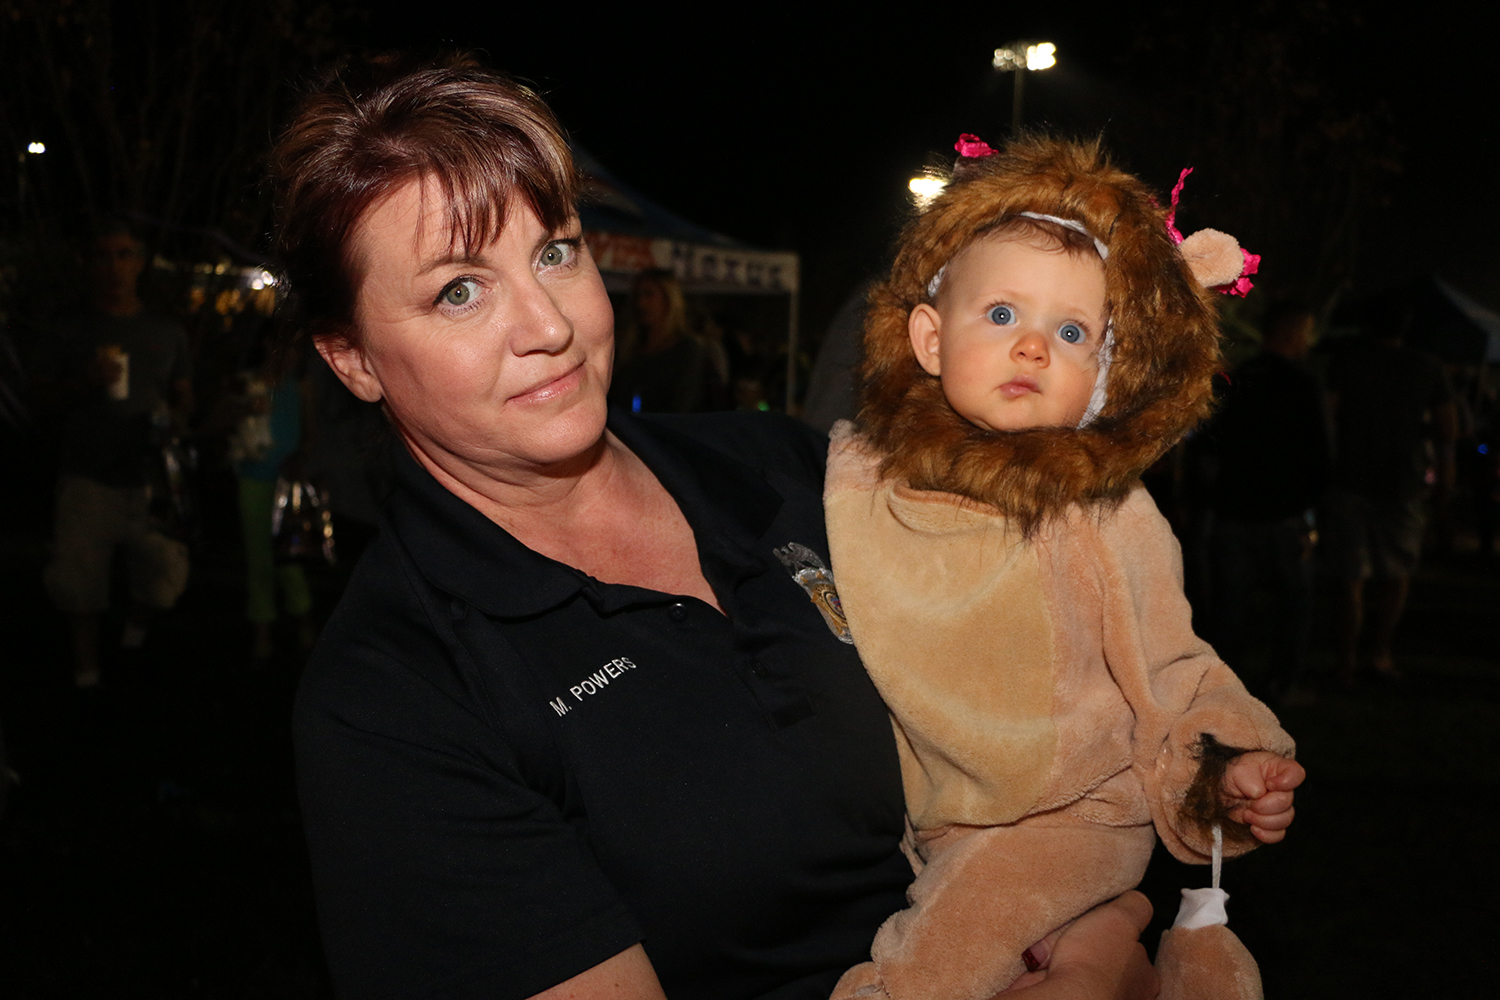 CSO Officer and small child in costume